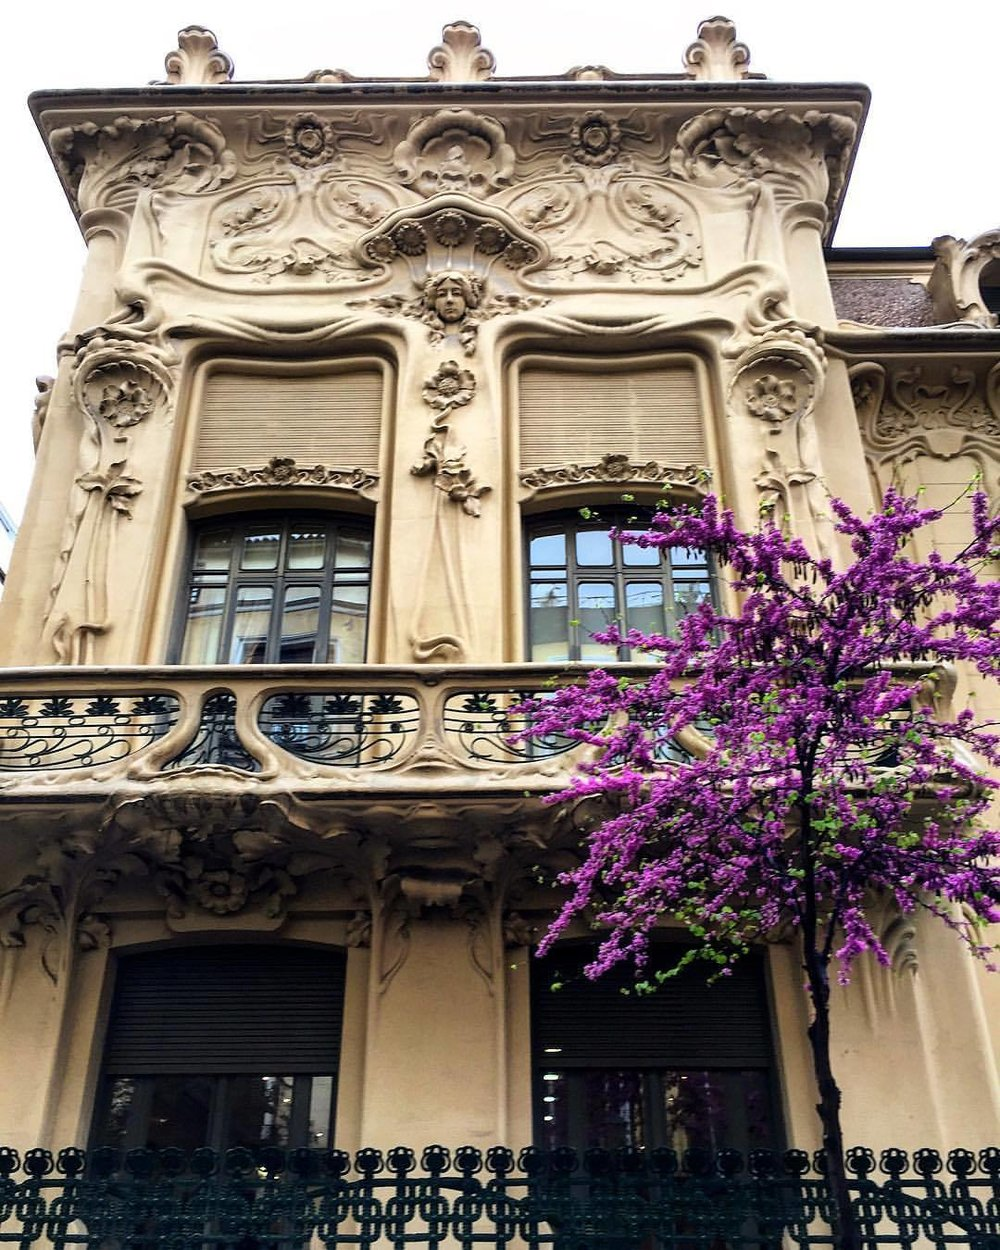 Palacio de Longoria is an Art Nouveau palace that politician and financier Francisco Javier González Longoria ordered to be built in the district of Chueca, in Madrid, Spain.  Longoria contracted the Catalán architect José Grases Riera to design and build it in 1902. It is one of Madrid's most notable examples of modernist architecture, and reminiscent of the work of another great Catalán architect, Antoni Gaudí.  #spain #madrid #architecture #artnouveau  (at Puerta del Sol Madrid)